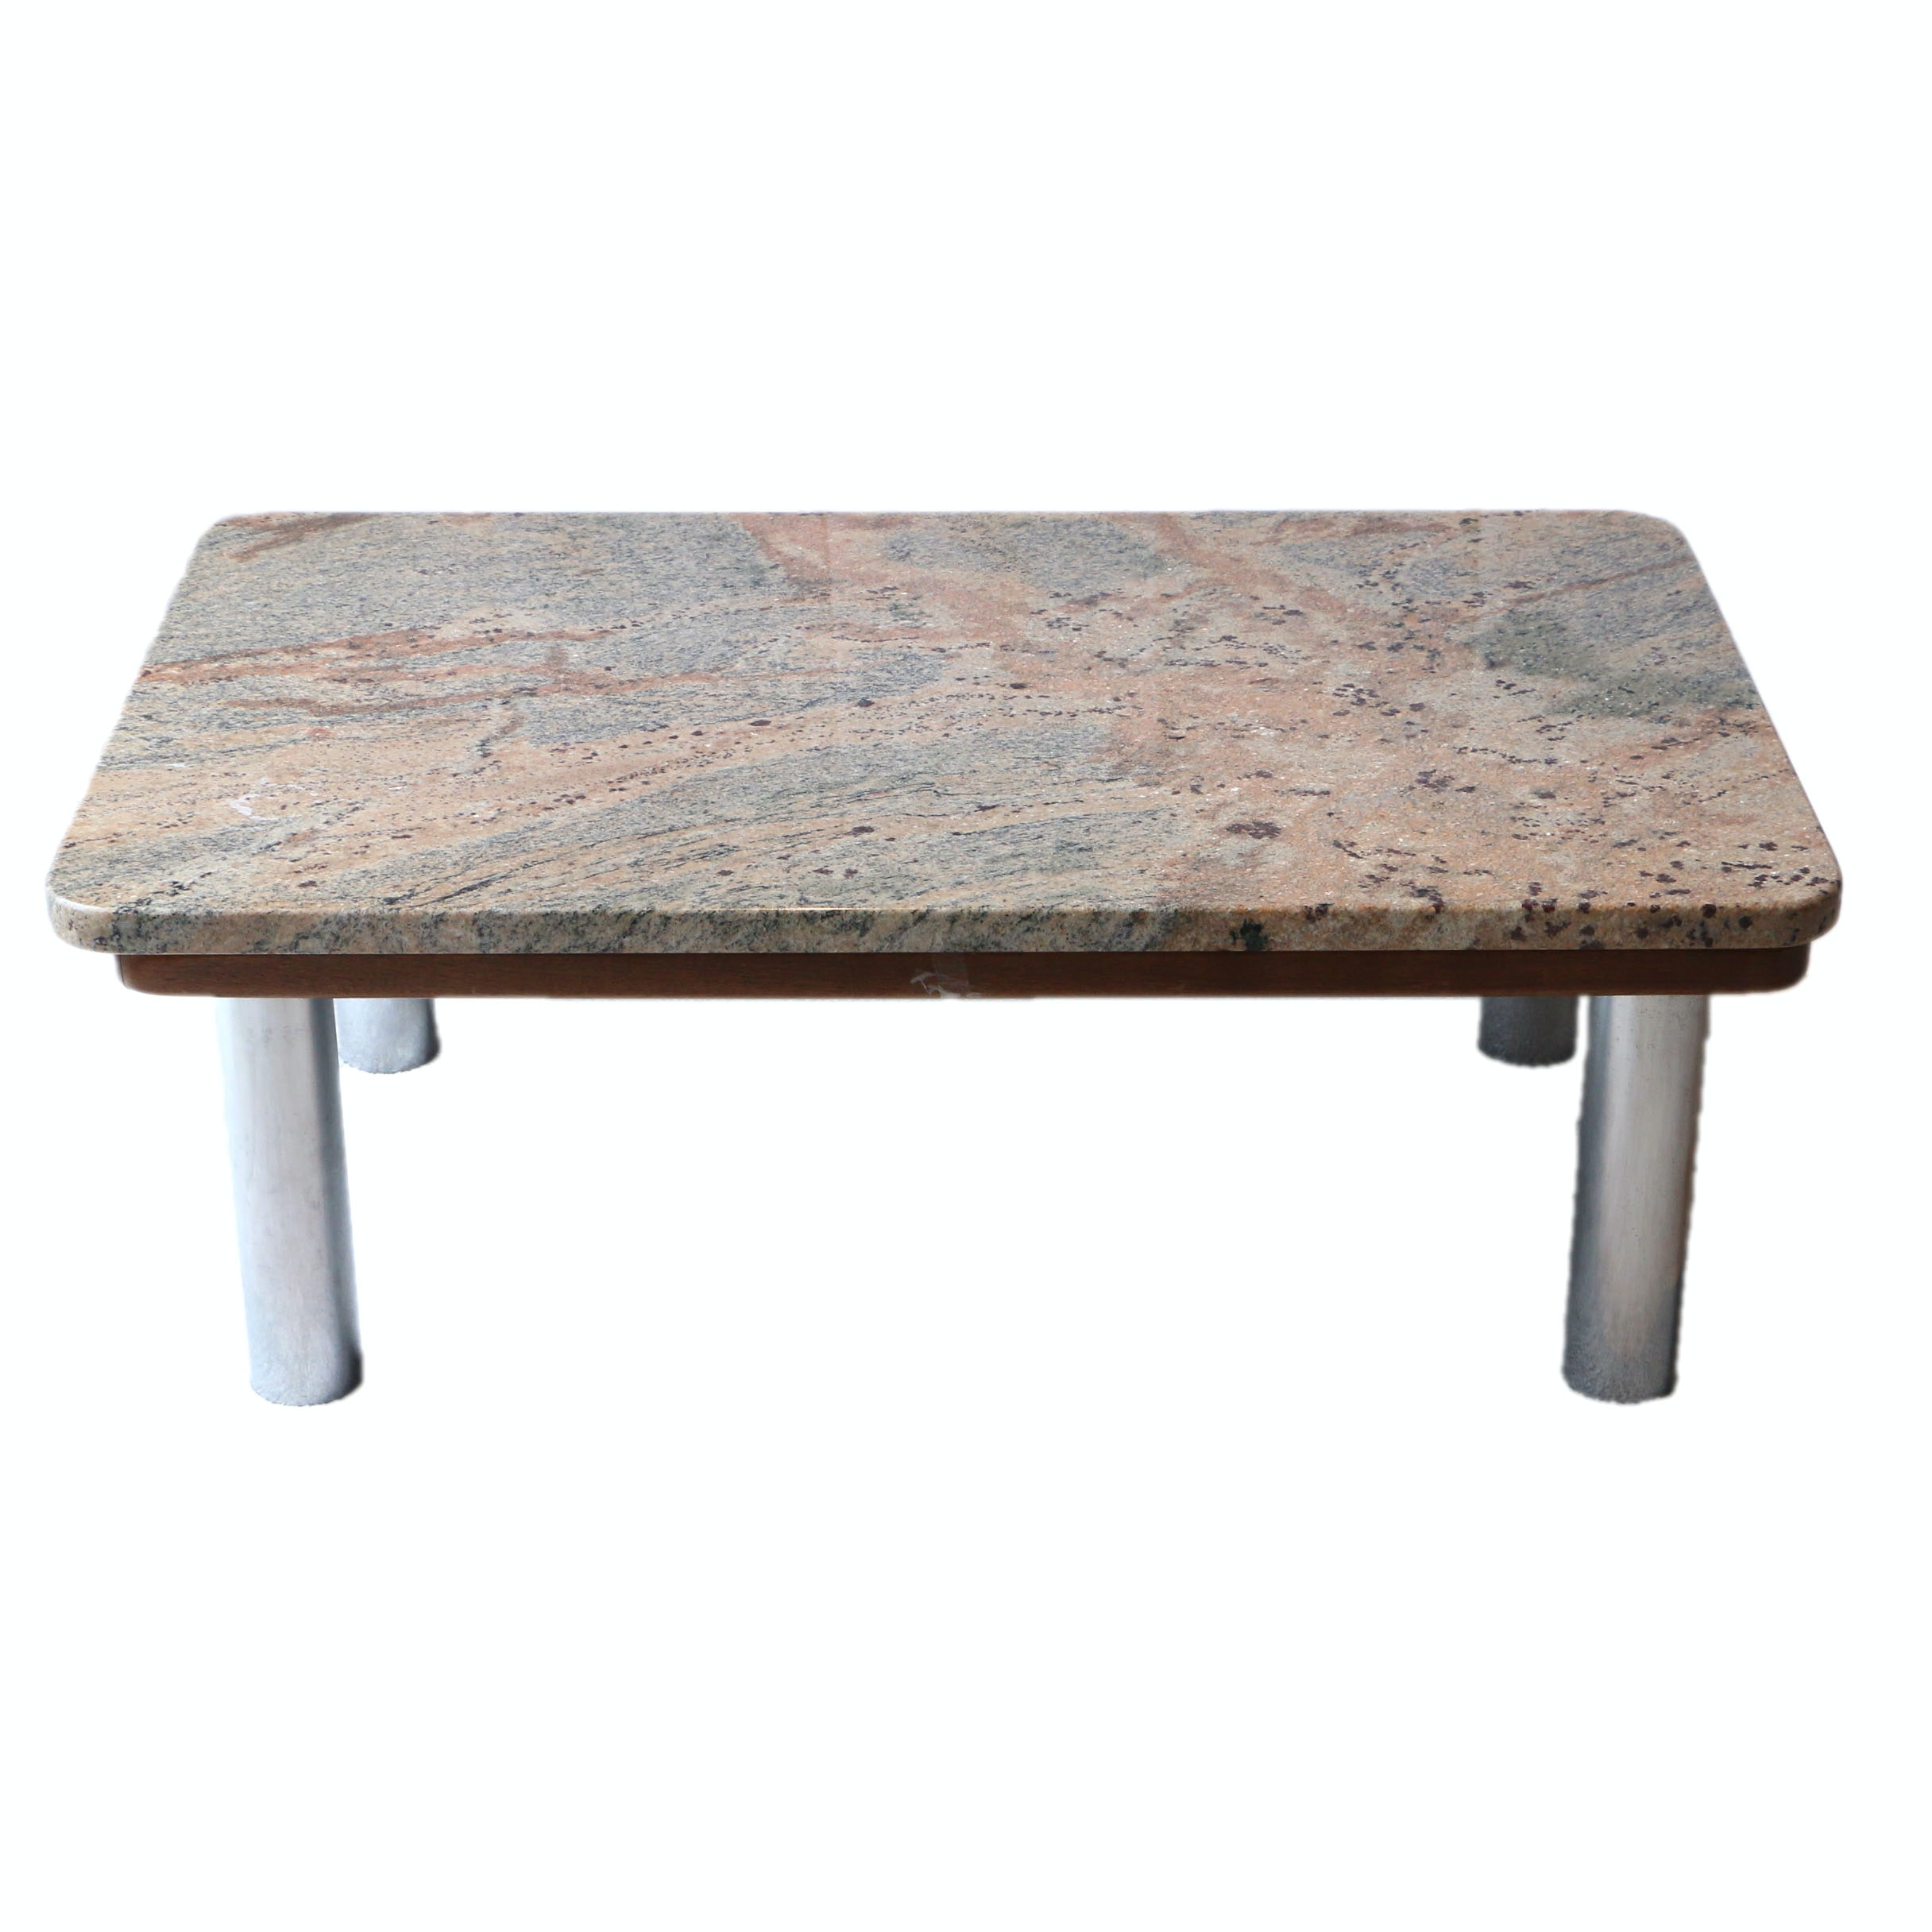 Pink and Grey Stone Top Coffee Table